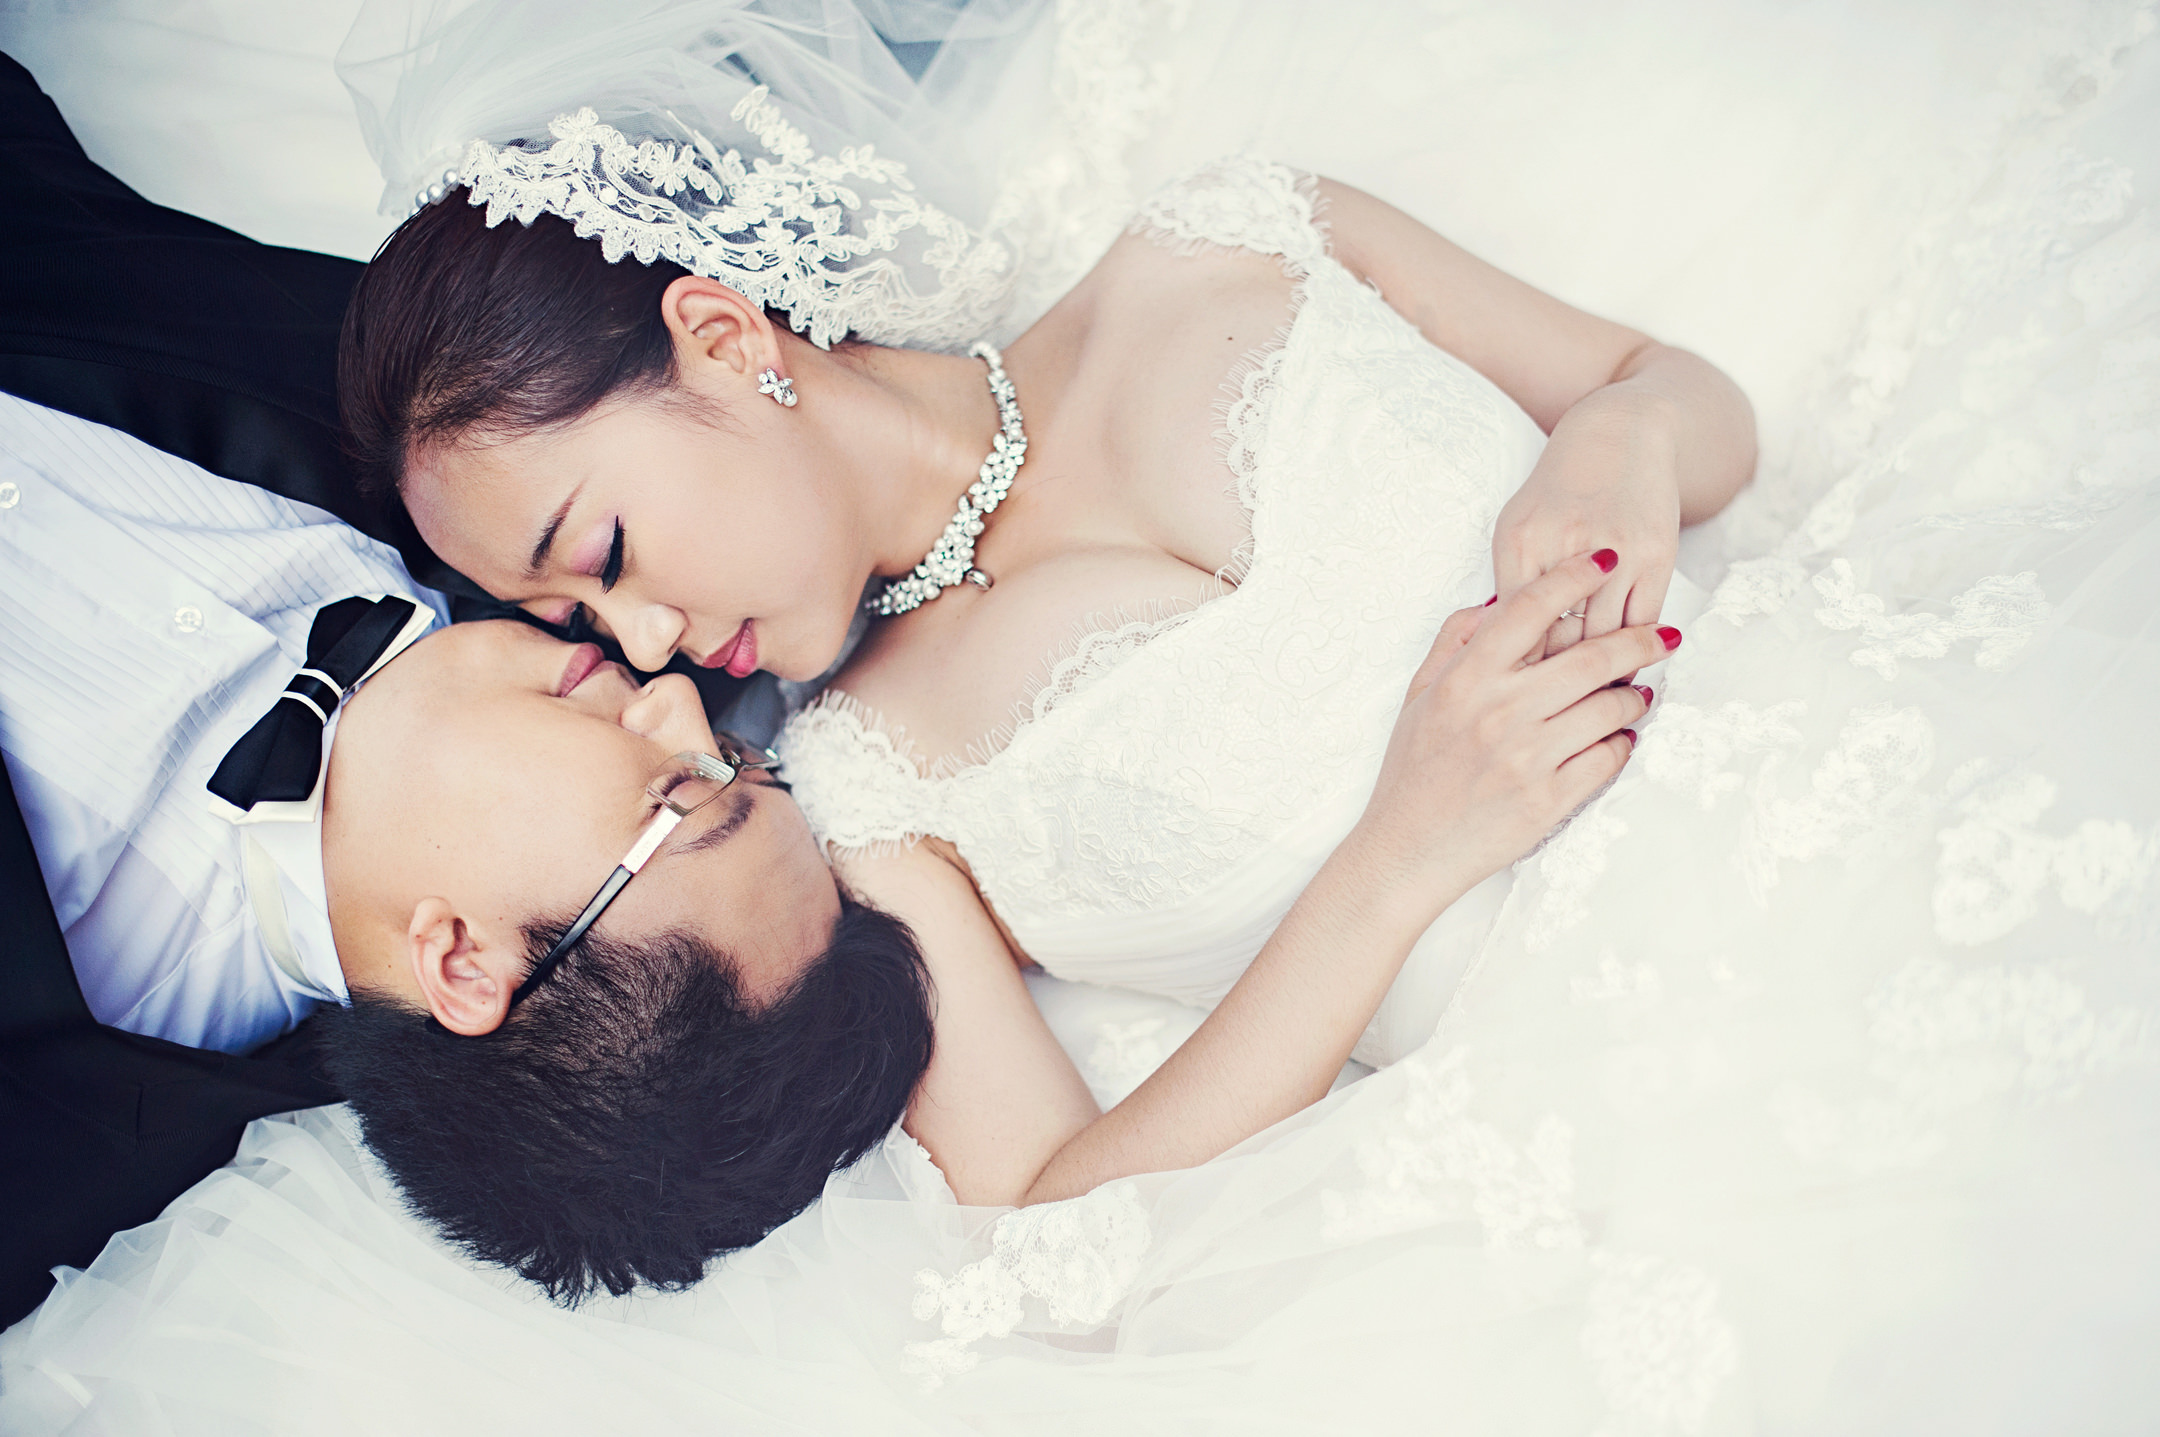 Chris_Hui_婚禮_婚紗照_pre_wedding_photography_best_140_.jpg